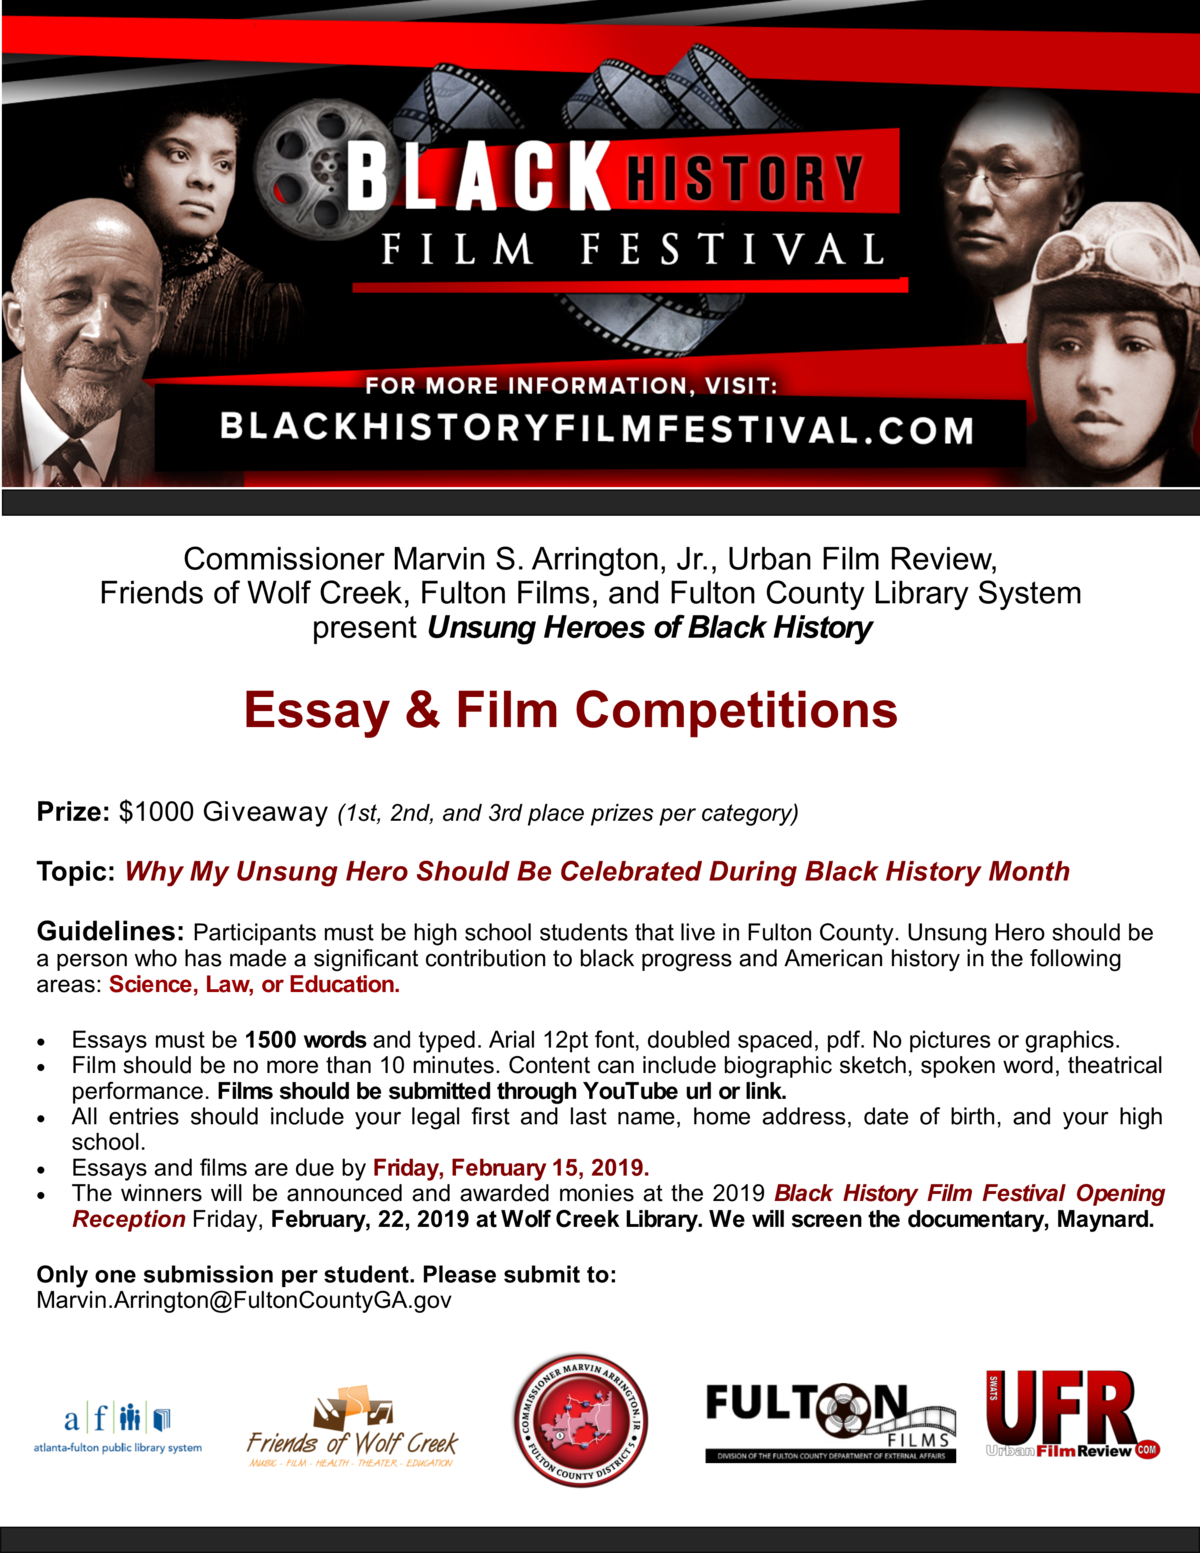 Black History Film Festival Essay  Film Competition  Atlanta  Essays And Films Must Be Submitted To Marvinarringtonfultoncountygagov  By Friday February   English Essays Topics also Www Oppapers Com Essays  Essays On High School